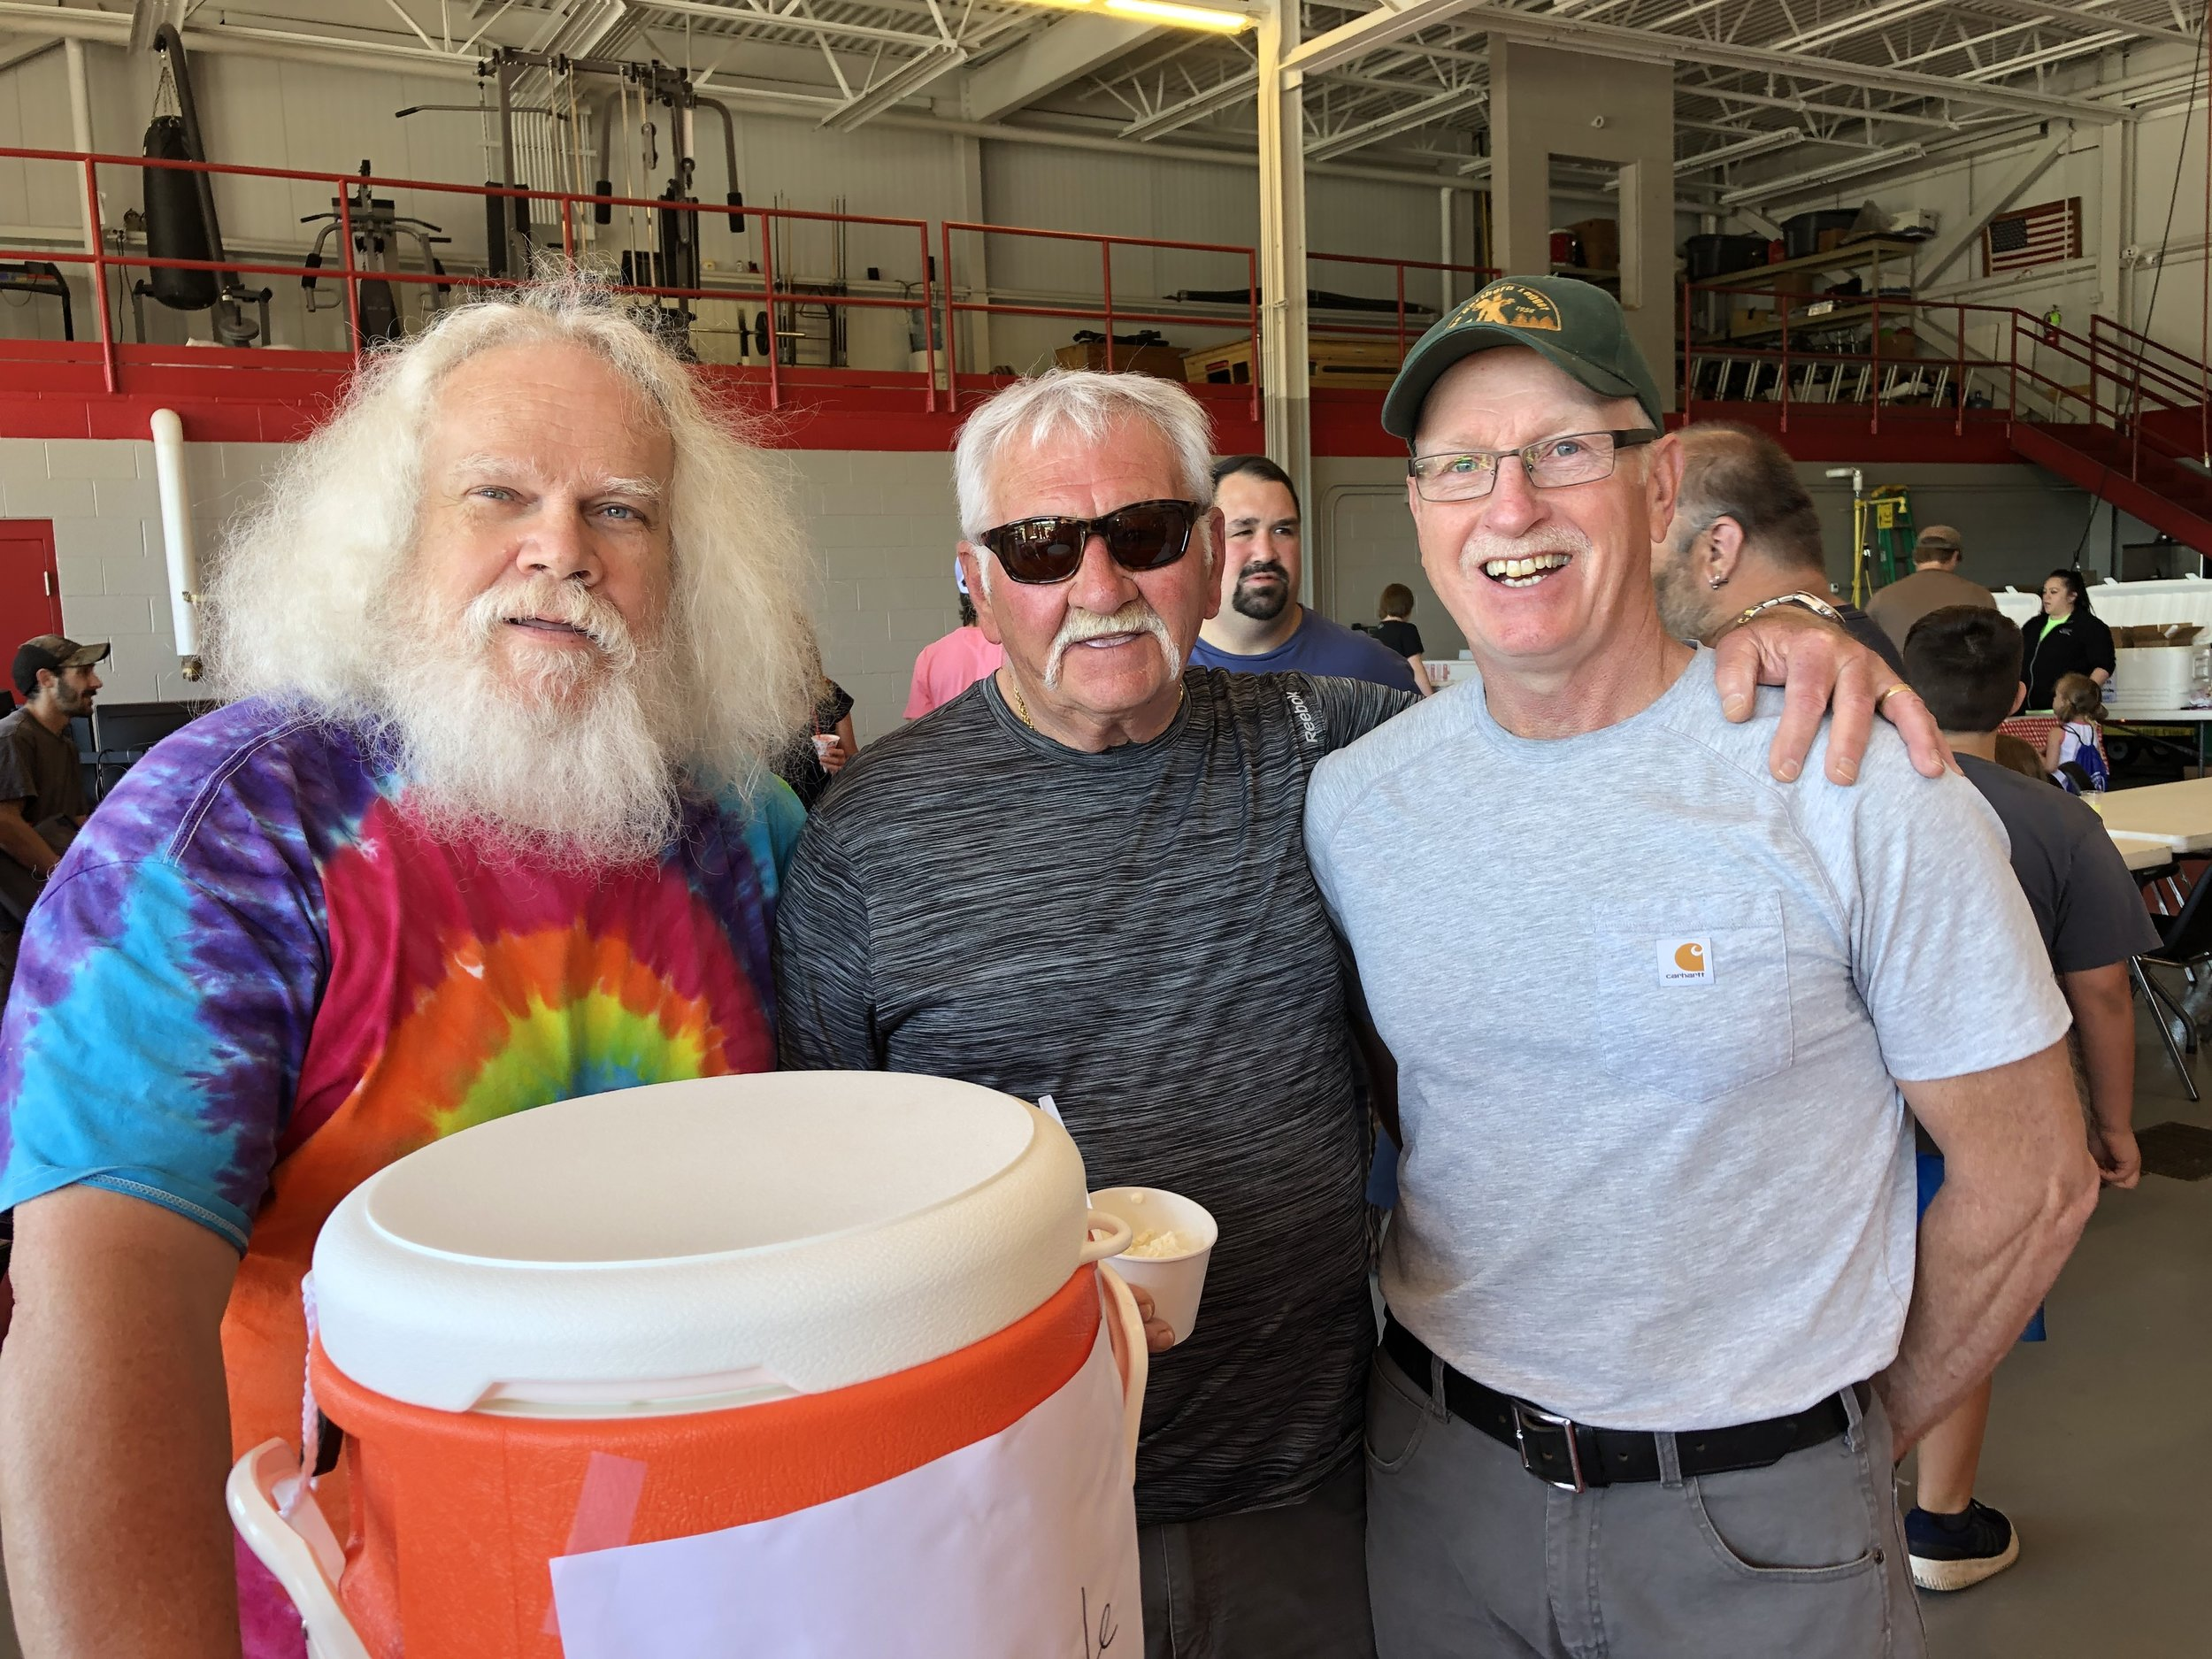 Veteran fireman Mike Russell was serving sweet drinks from two vats Saturday at the bike rodeo and at one point was joined by a couple happy rodeo-goers, Mike Arsenault and Jeff Thomas.